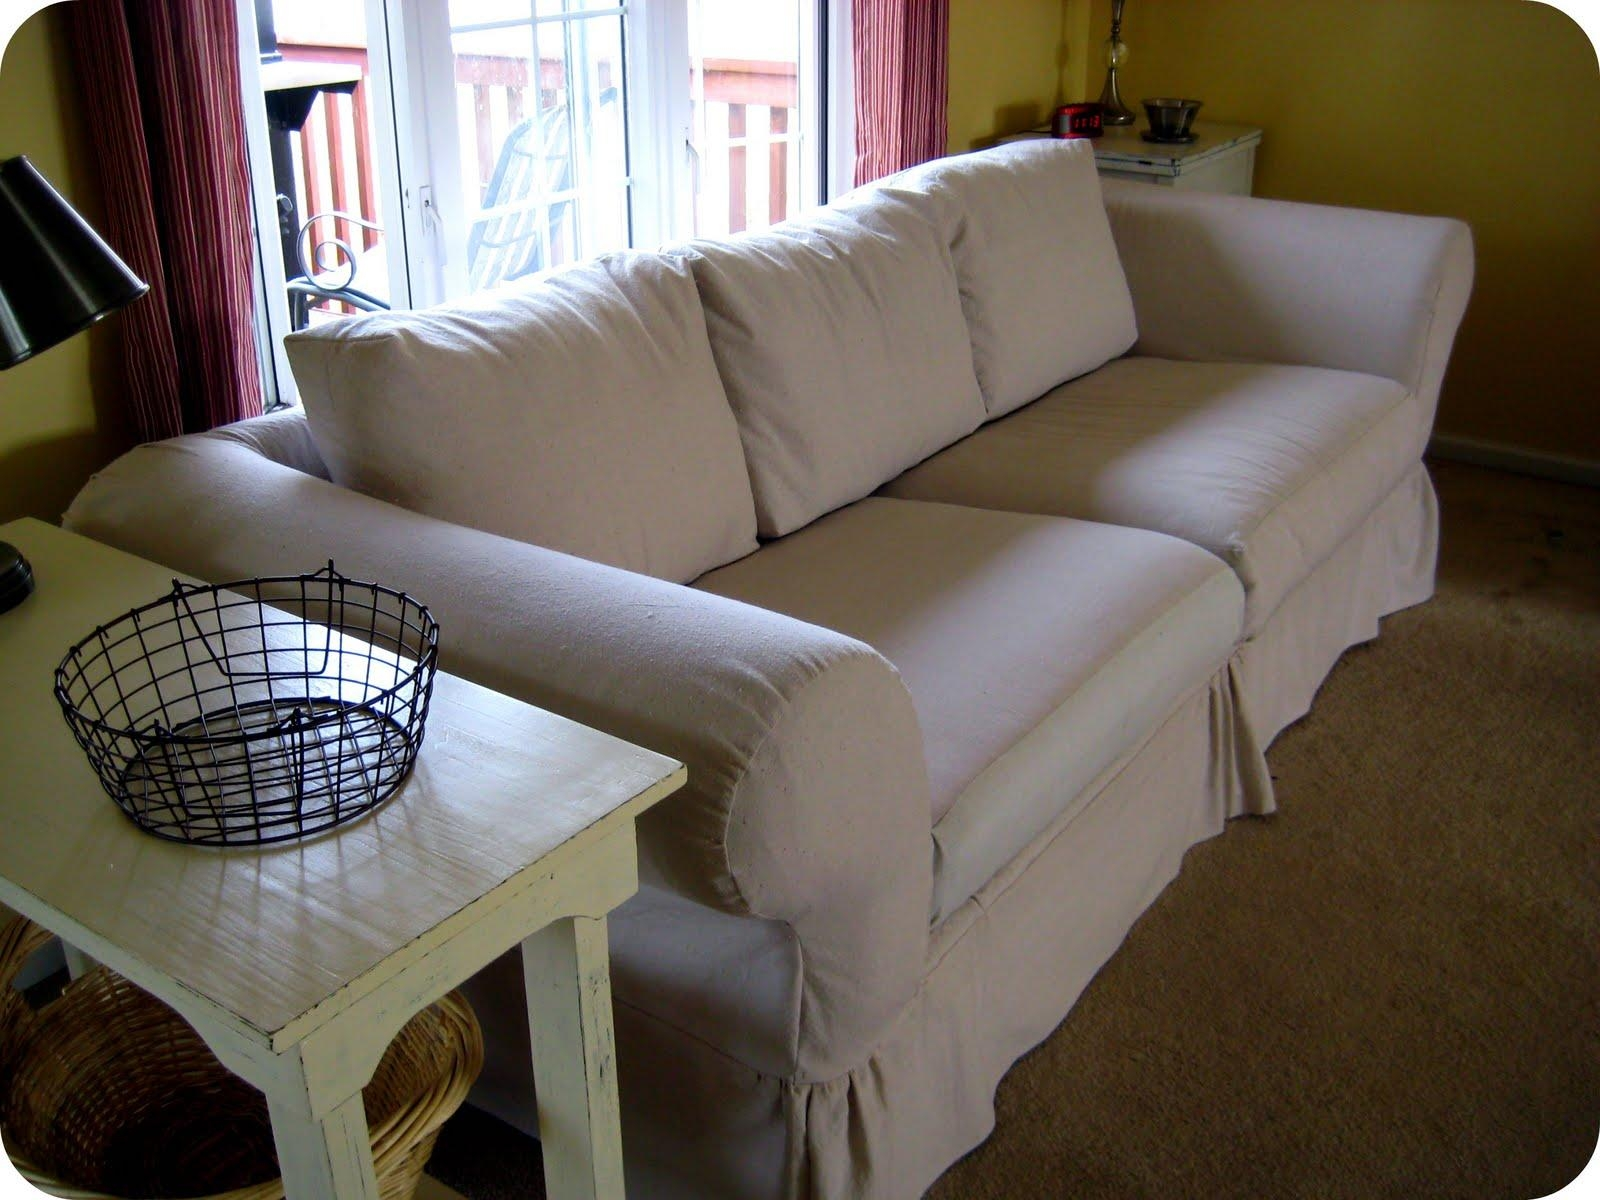 Canvas Sofa Slipcovers | Sofa Gallery | Kengire Within Canvas Slipcover Sofas (Image 4 of 20)